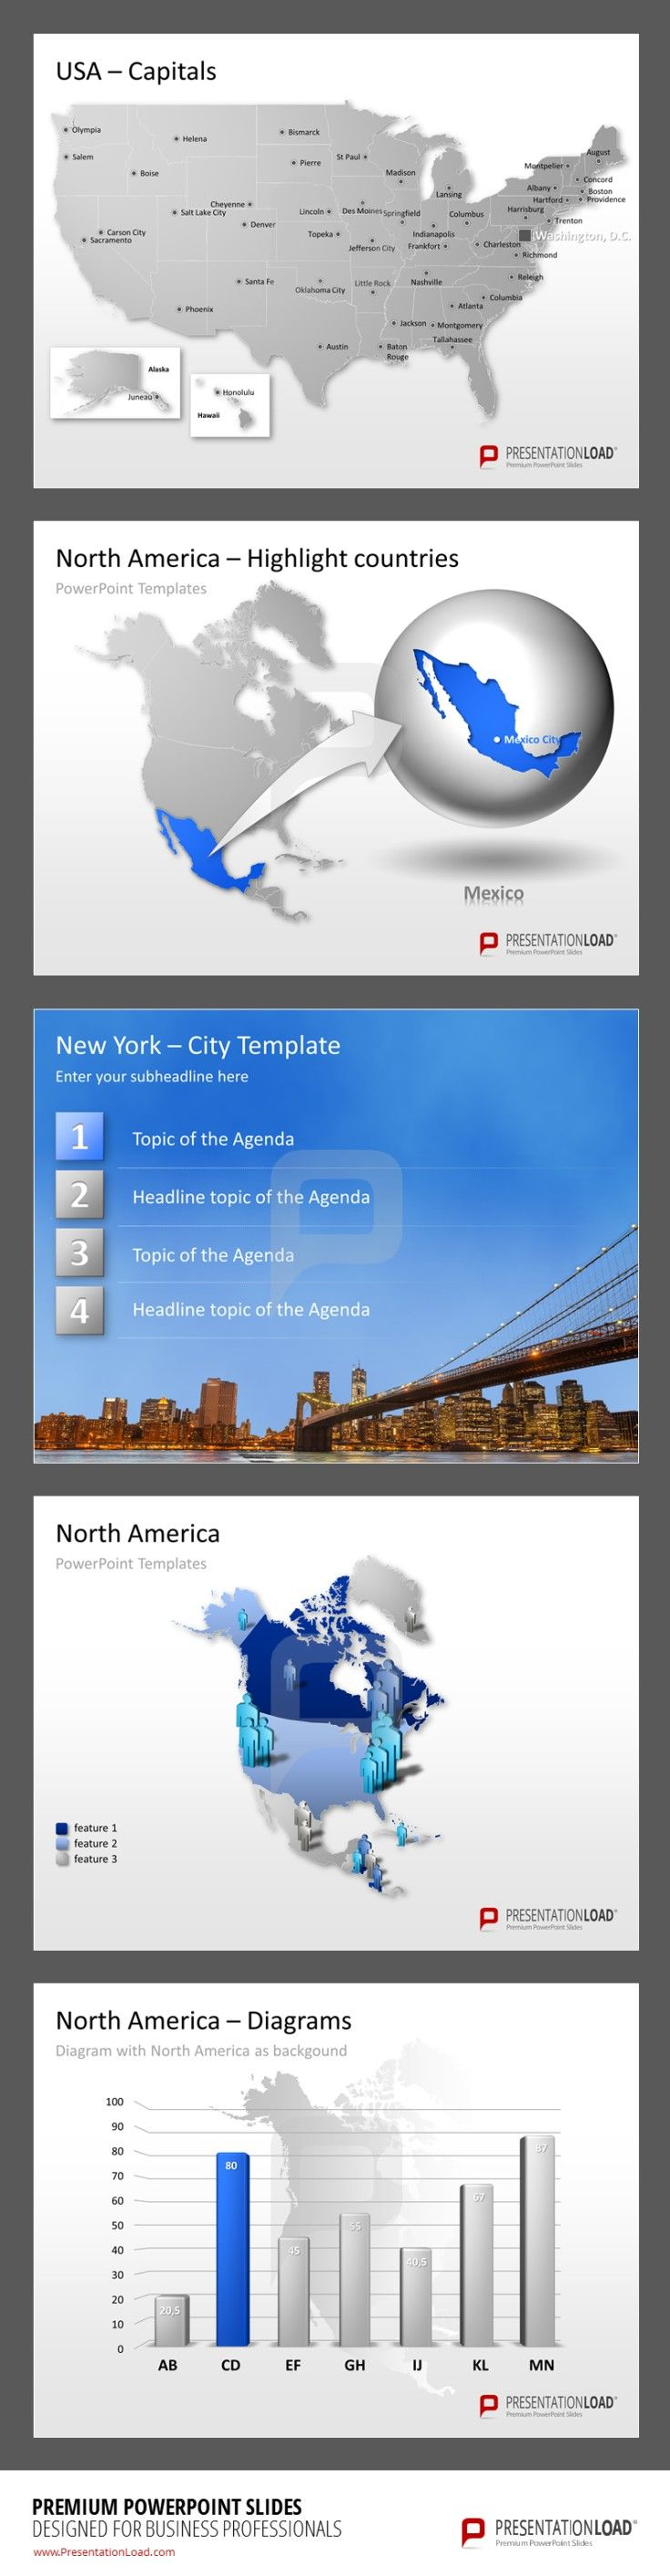 Best Images About MAPS  POWERPOINT TEMPLATES On Pinterest - United states map that shows the capitals